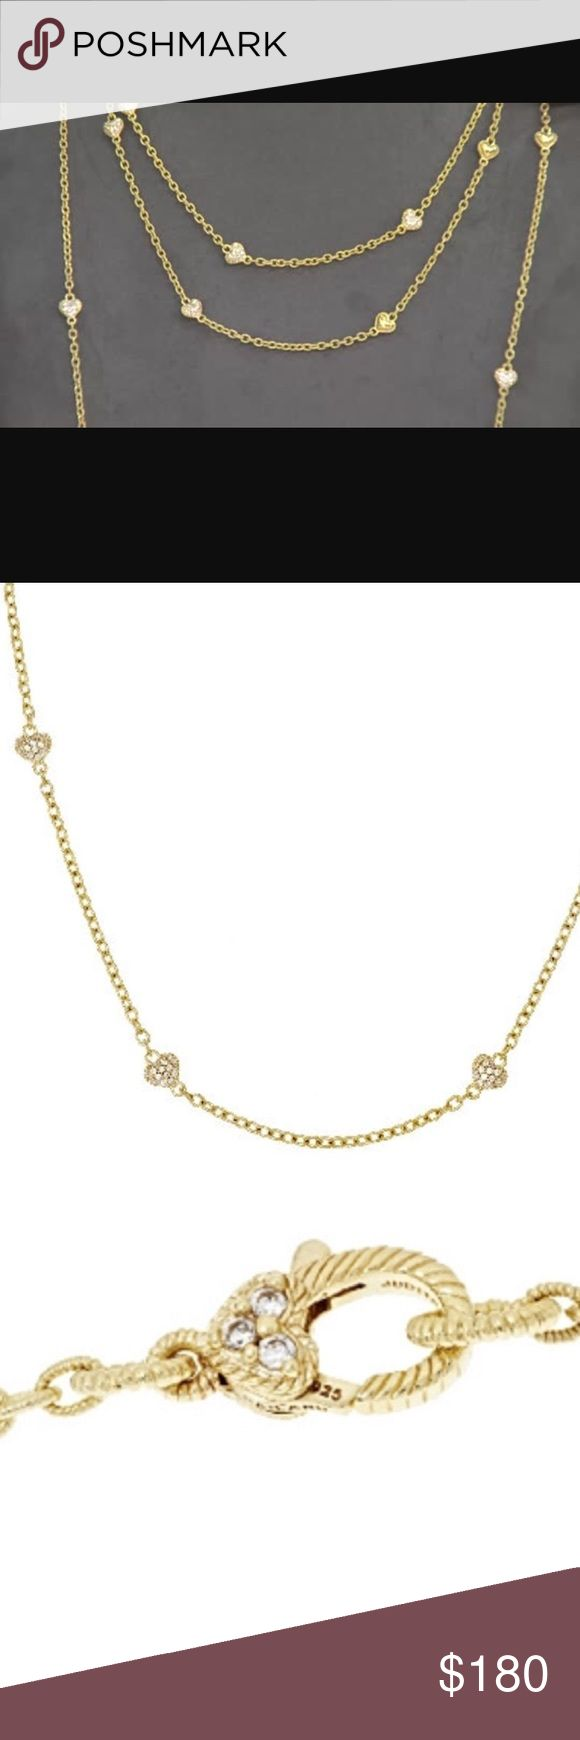 """Judith Rika 36"""" 14k Gold Clad Heart Necklace NEW! Discontinued style. Sold out online. RARE! 14K yellow gold-clad sterling silver heart station necklace Sparkling cubic zirconia Diamonique(R) simulated diamond hearts with lovely rope borders & an angled berge-textured back are strung together on a shimmering textured oval link chain. Lobster claw clasp with bead-set Diamonique simulated diamonds in heart design with berge-textured back Judith Ripka Jewelry Necklaces"""